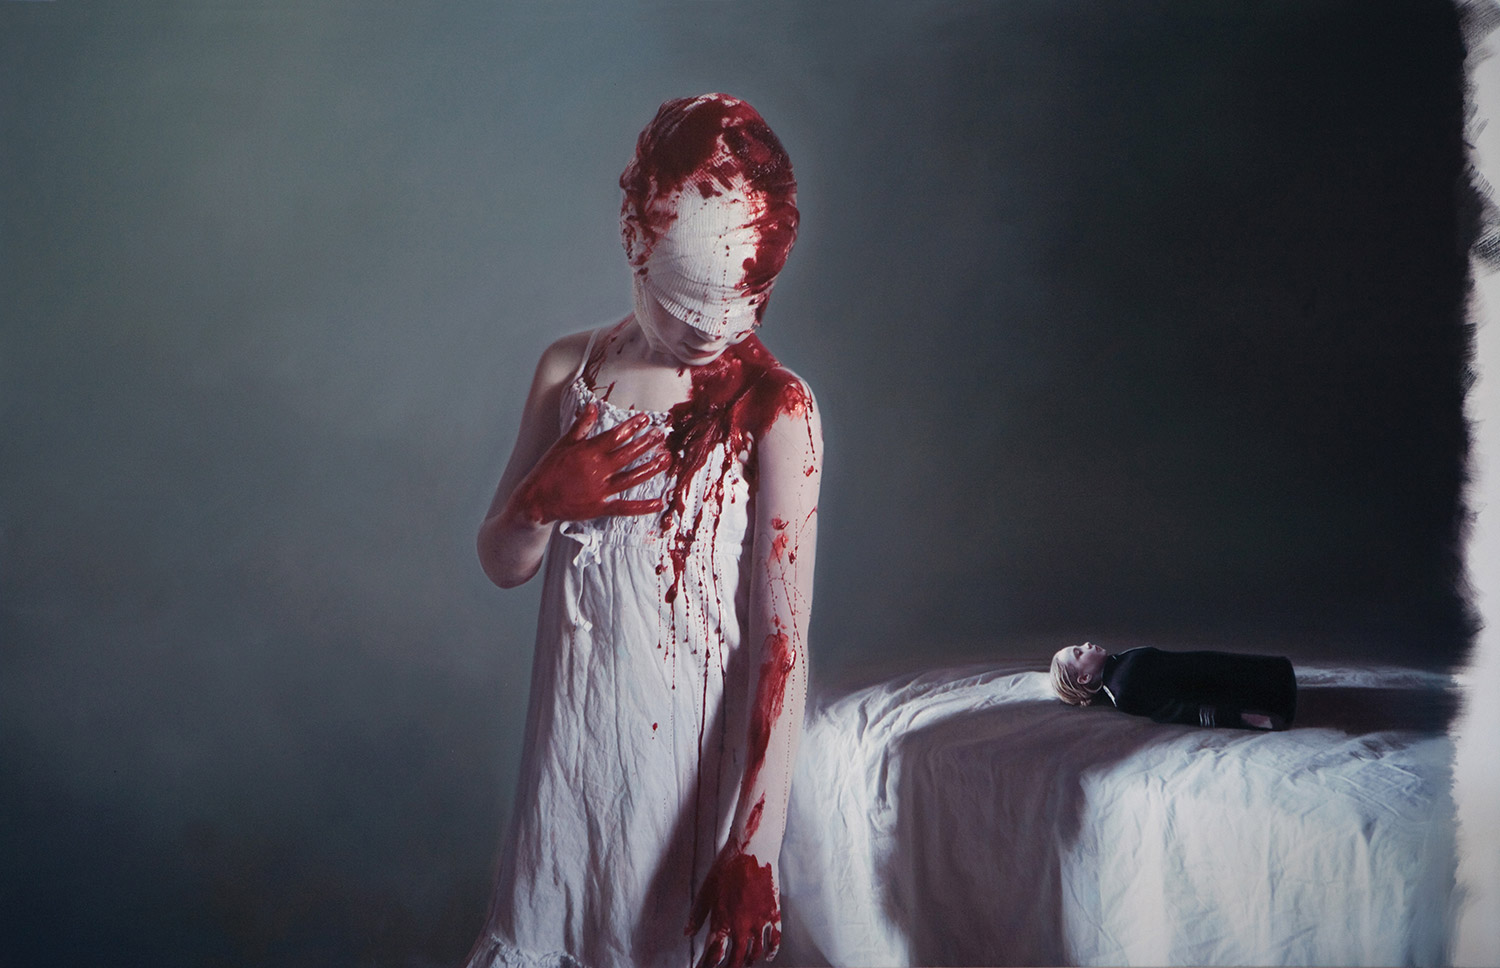 Gottfried Helnwein - The Disasters of War 3